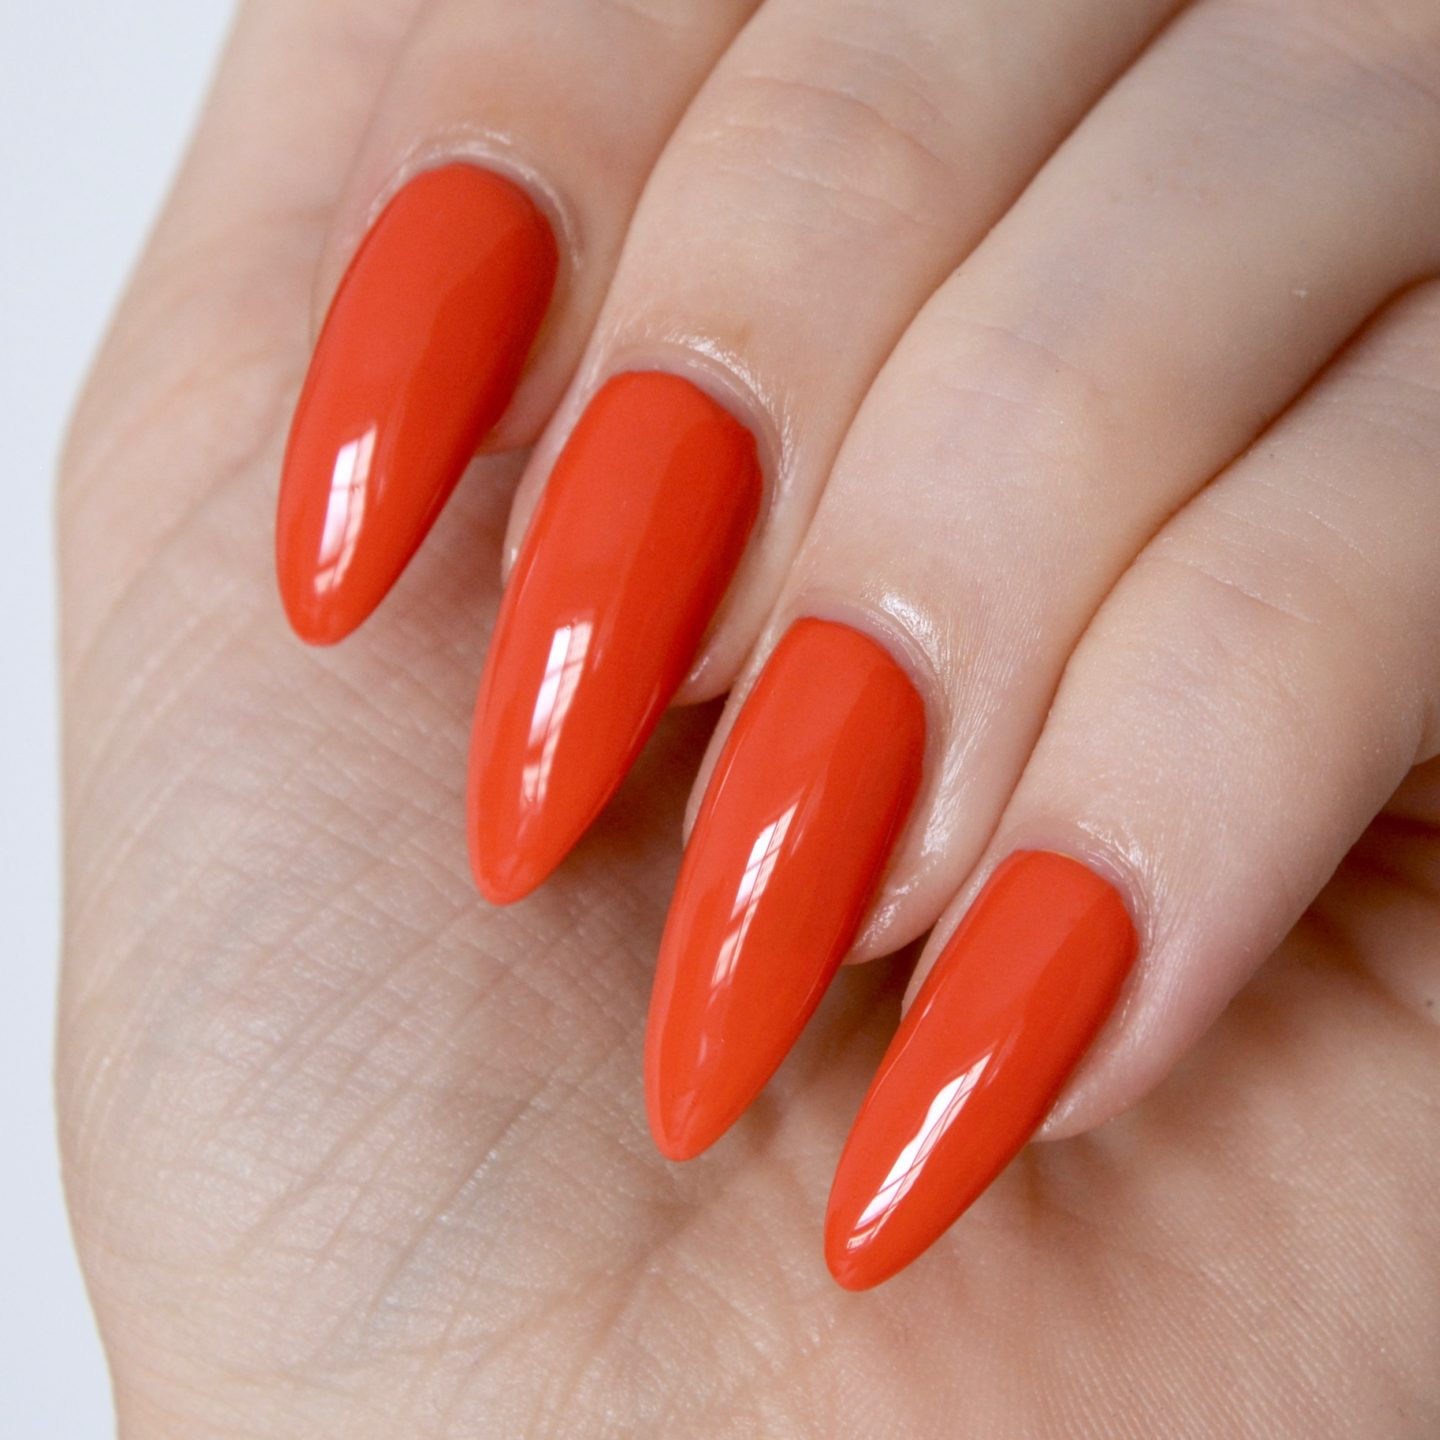 Jessica Prime Collection 'Orange' swatches